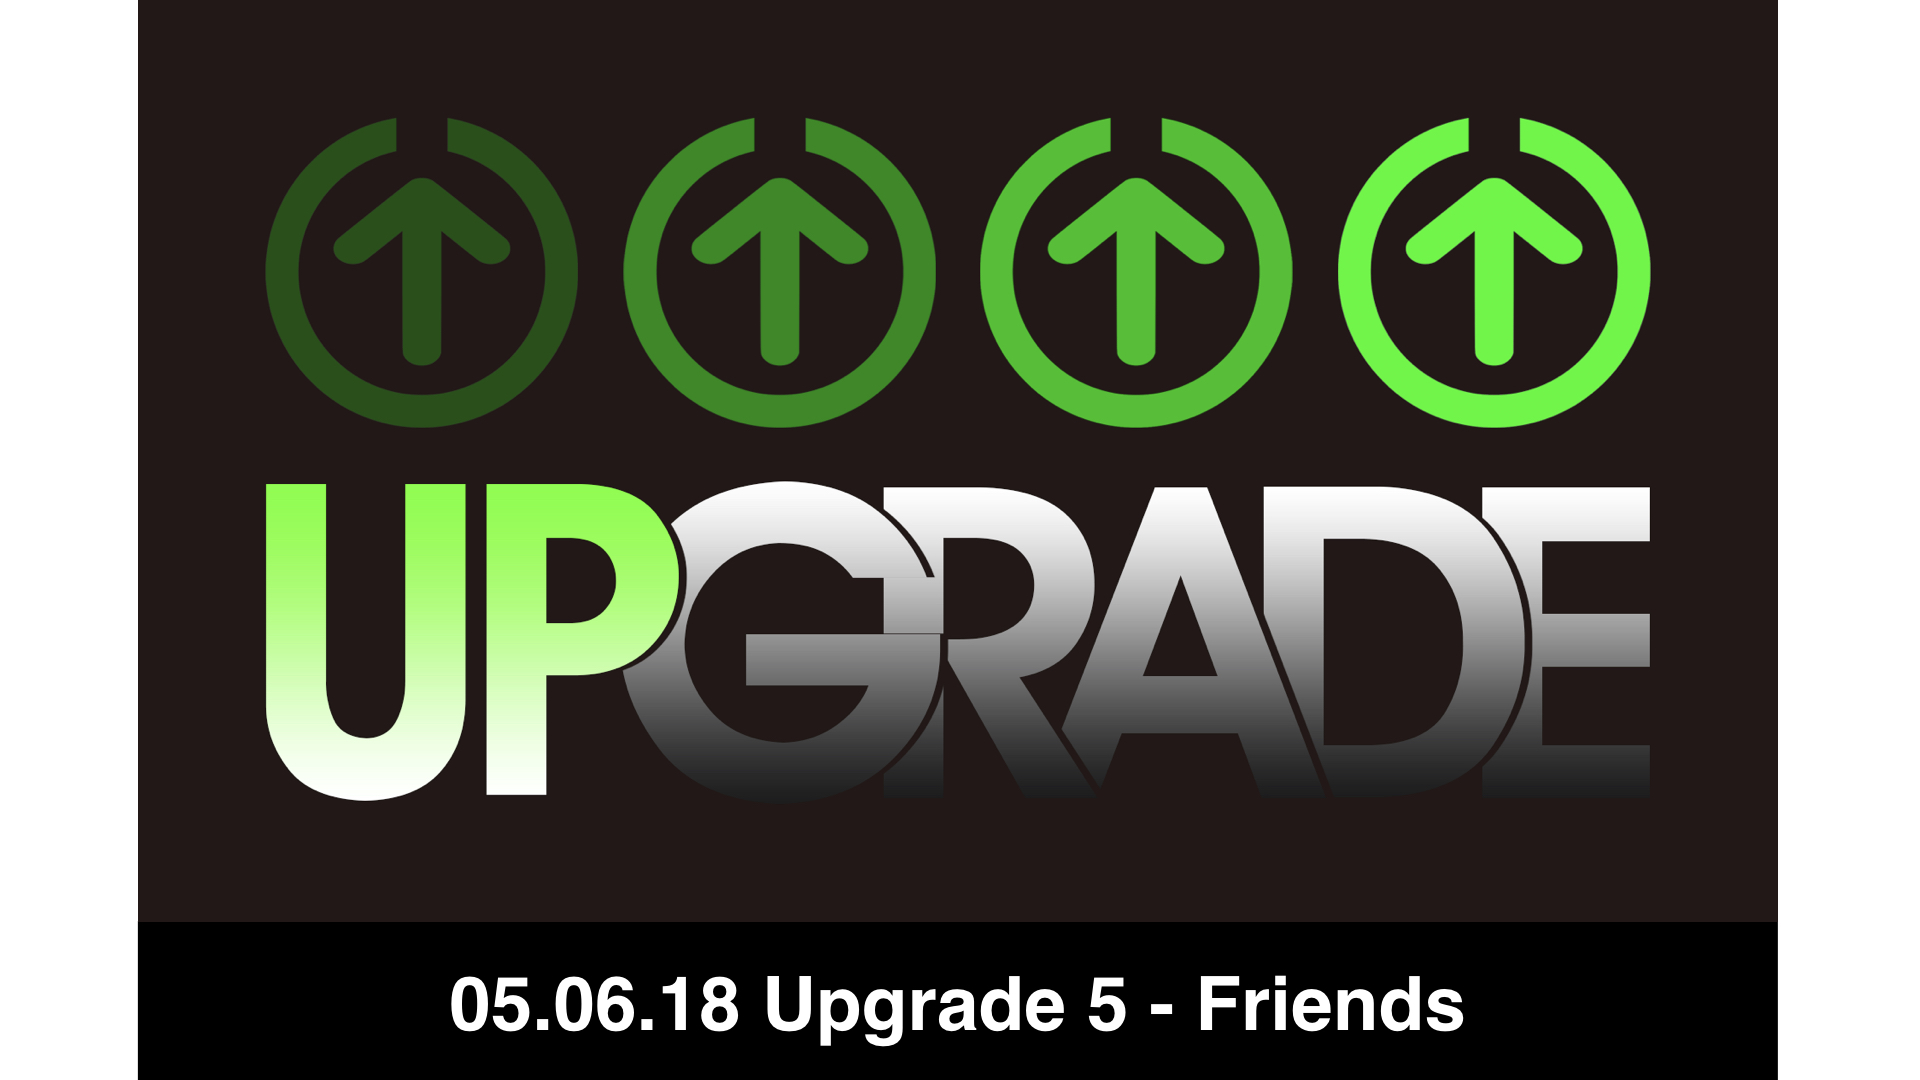 05.06.18 Upgrade 5 - Friends